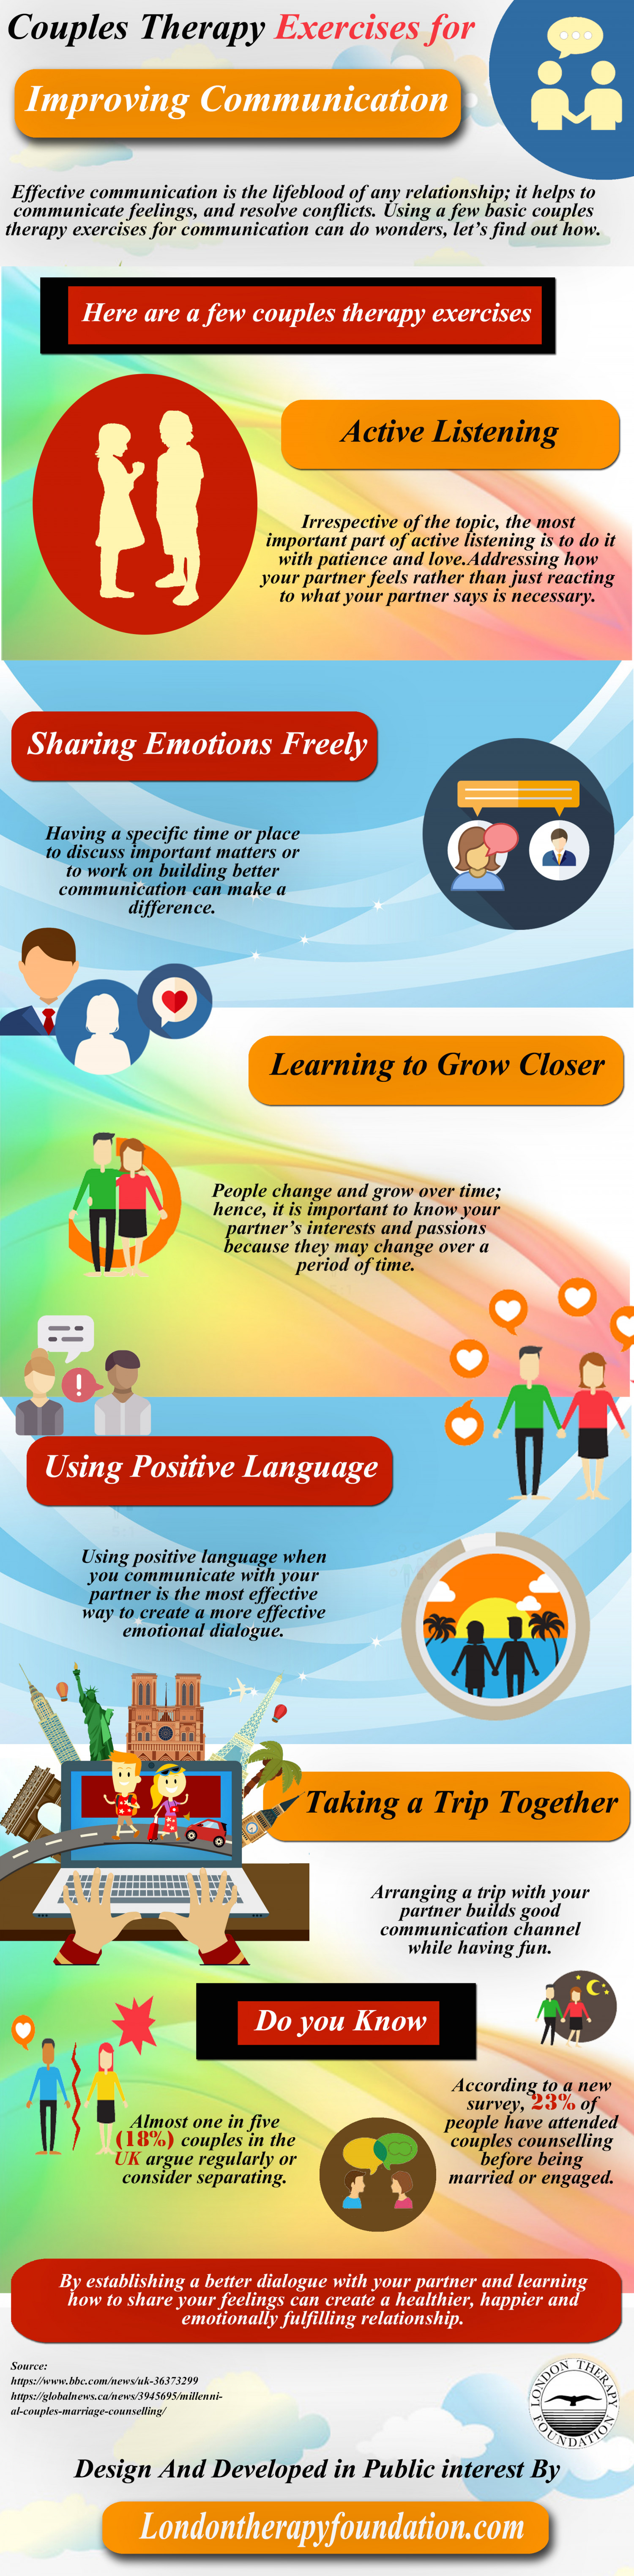 Couples Therapy Exercises for Improving Communication Infographic